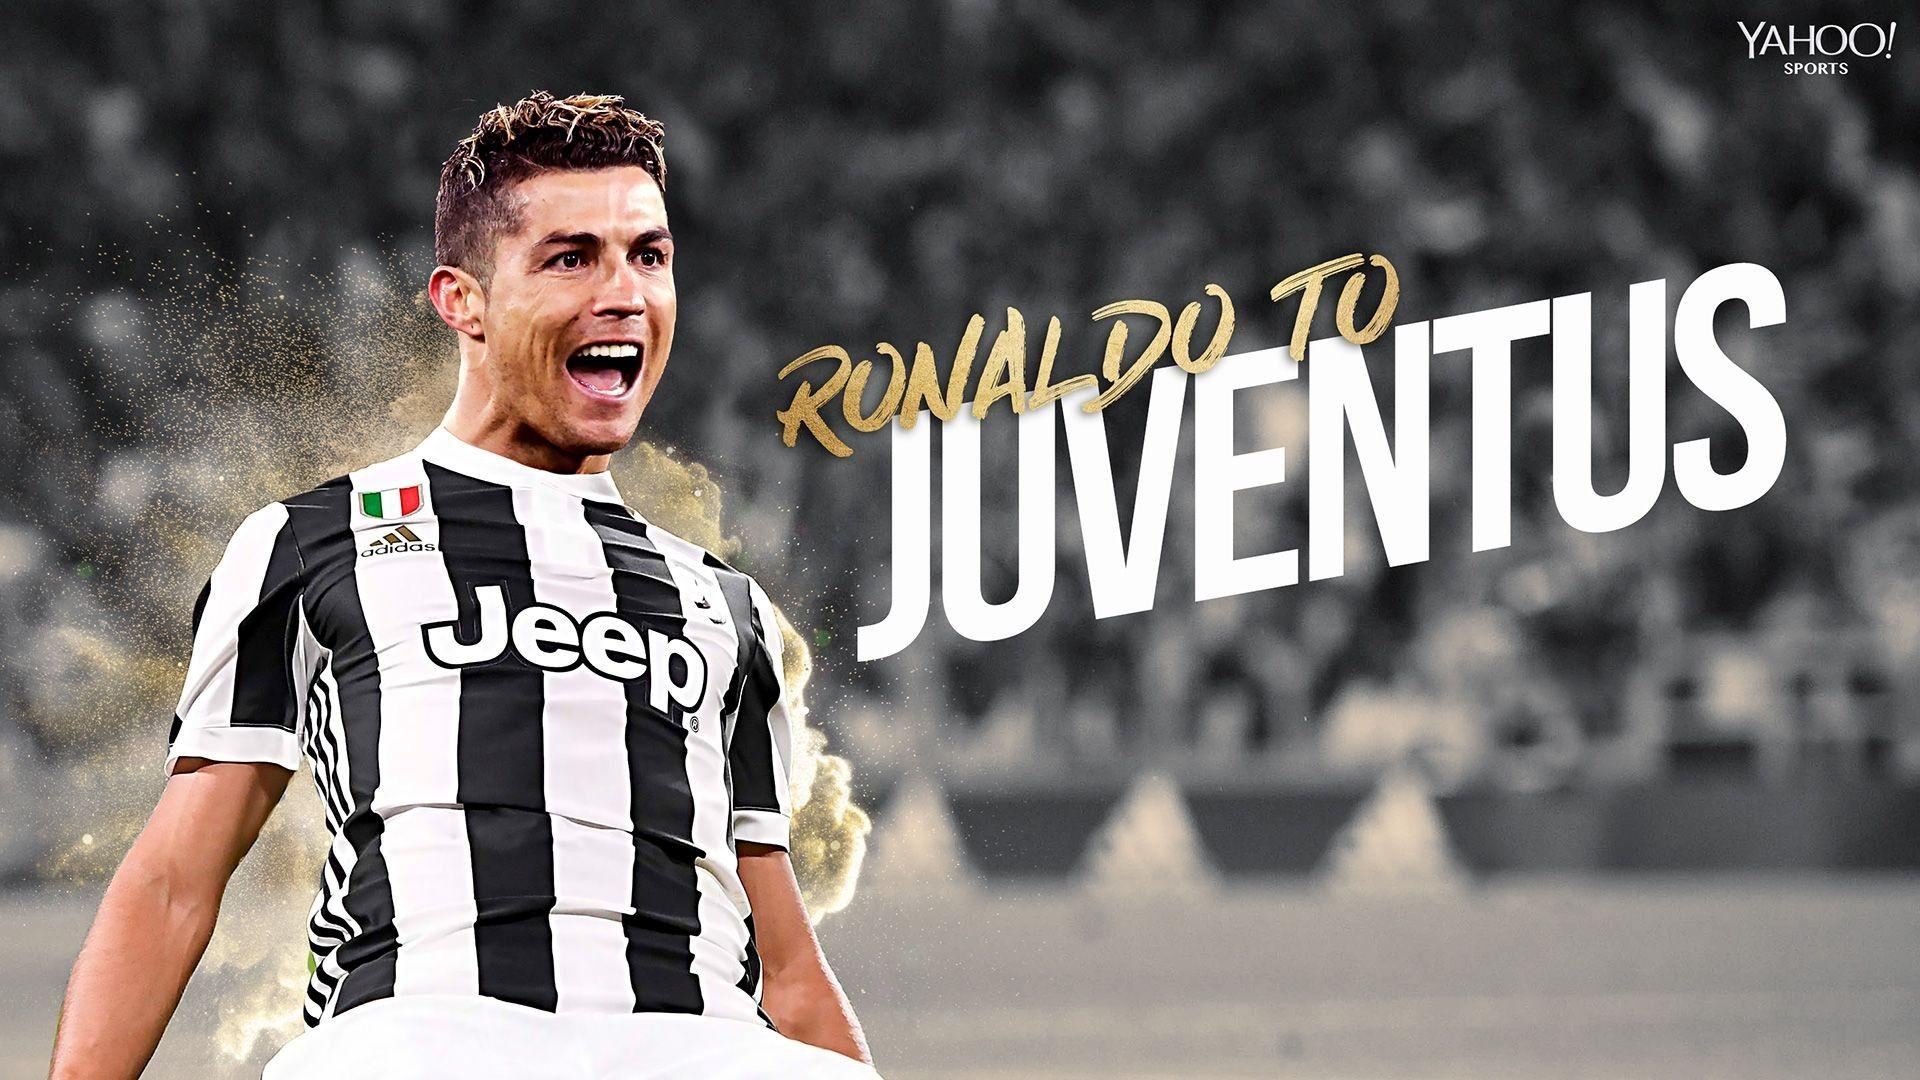 CR7 Juventus Wallpapers Wallpaper Cave